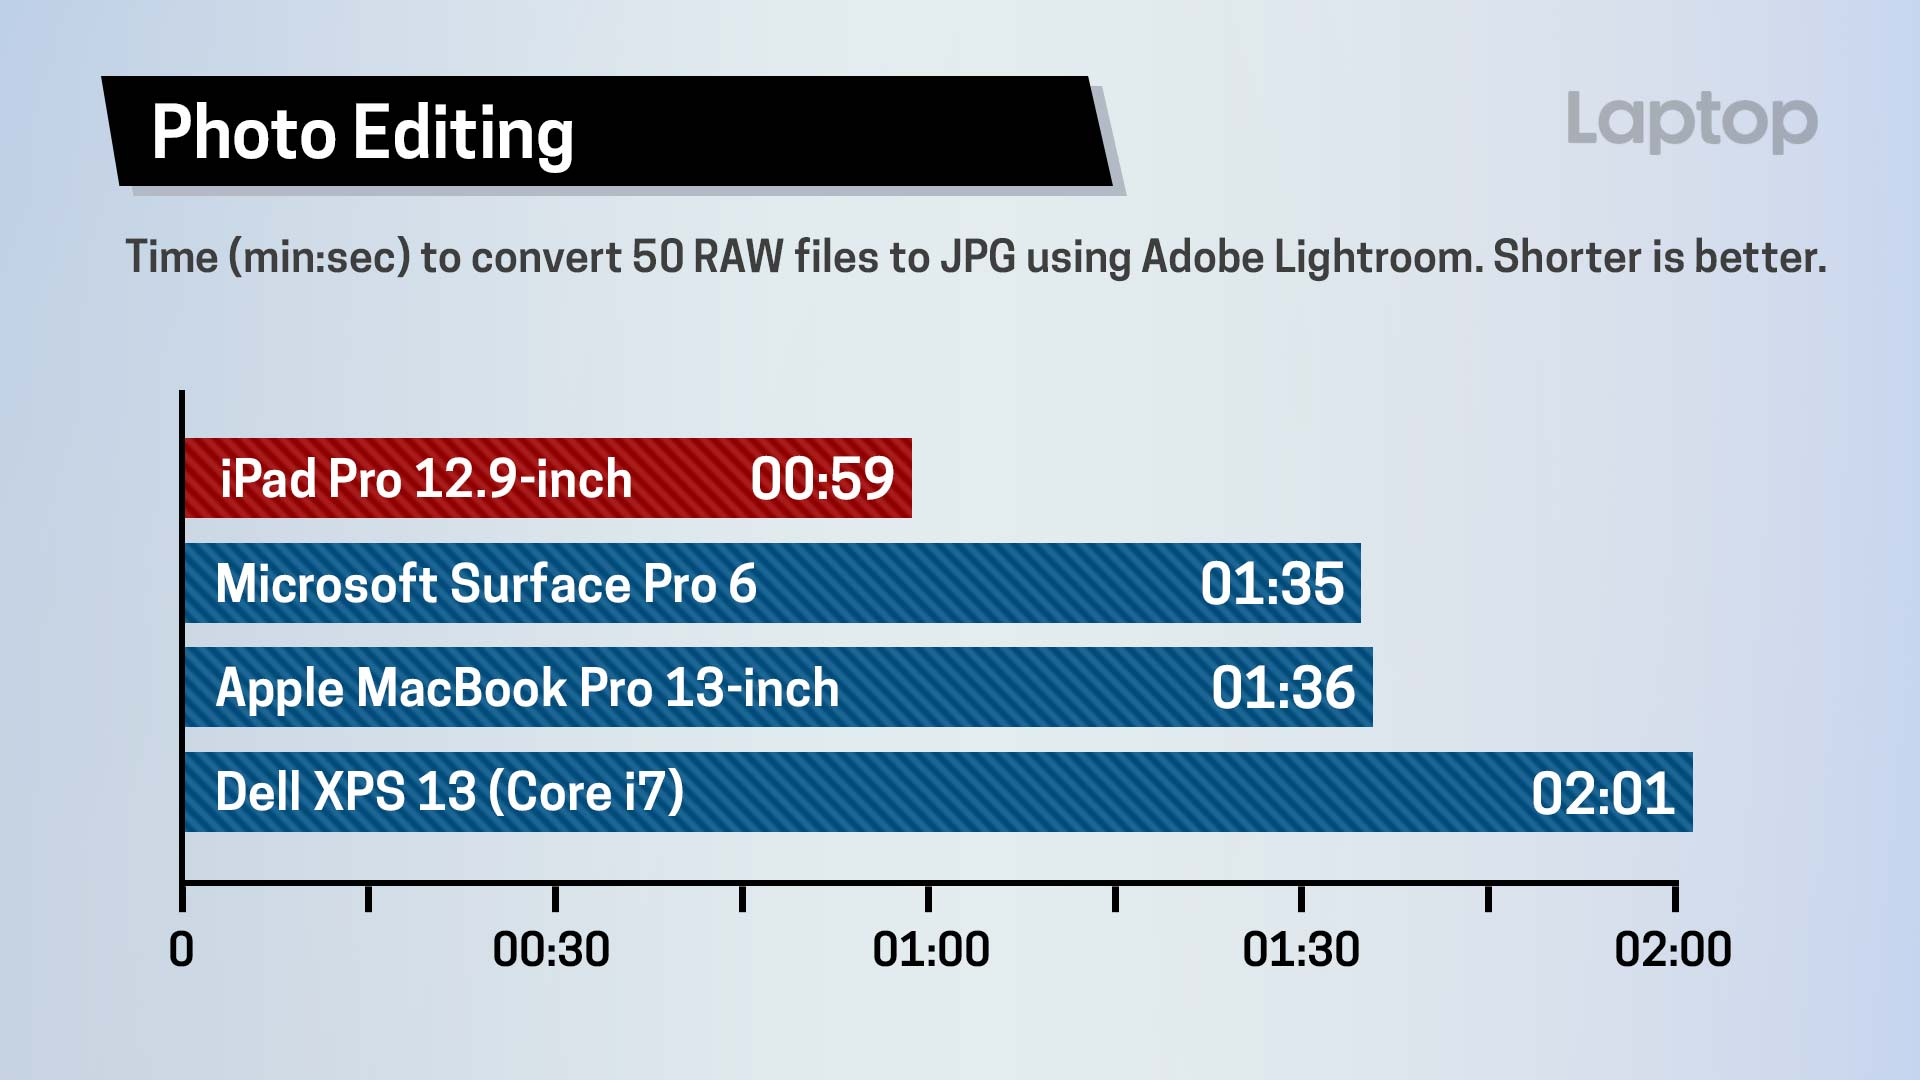 Ipad Pro Video Editing Performance Takes Less Than One Third Of The